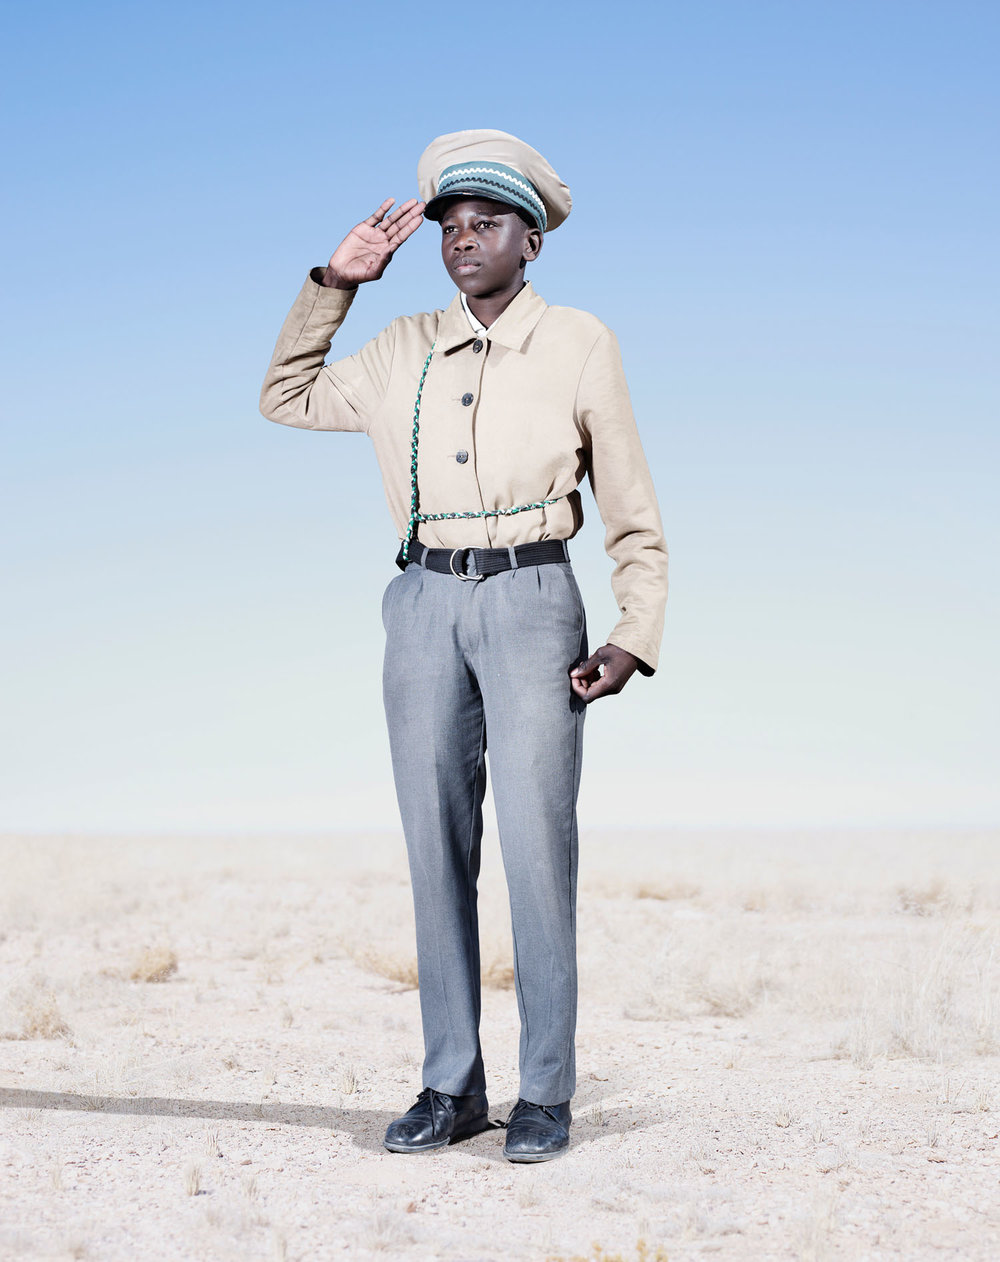 Herero Cadet Saluting (2012)